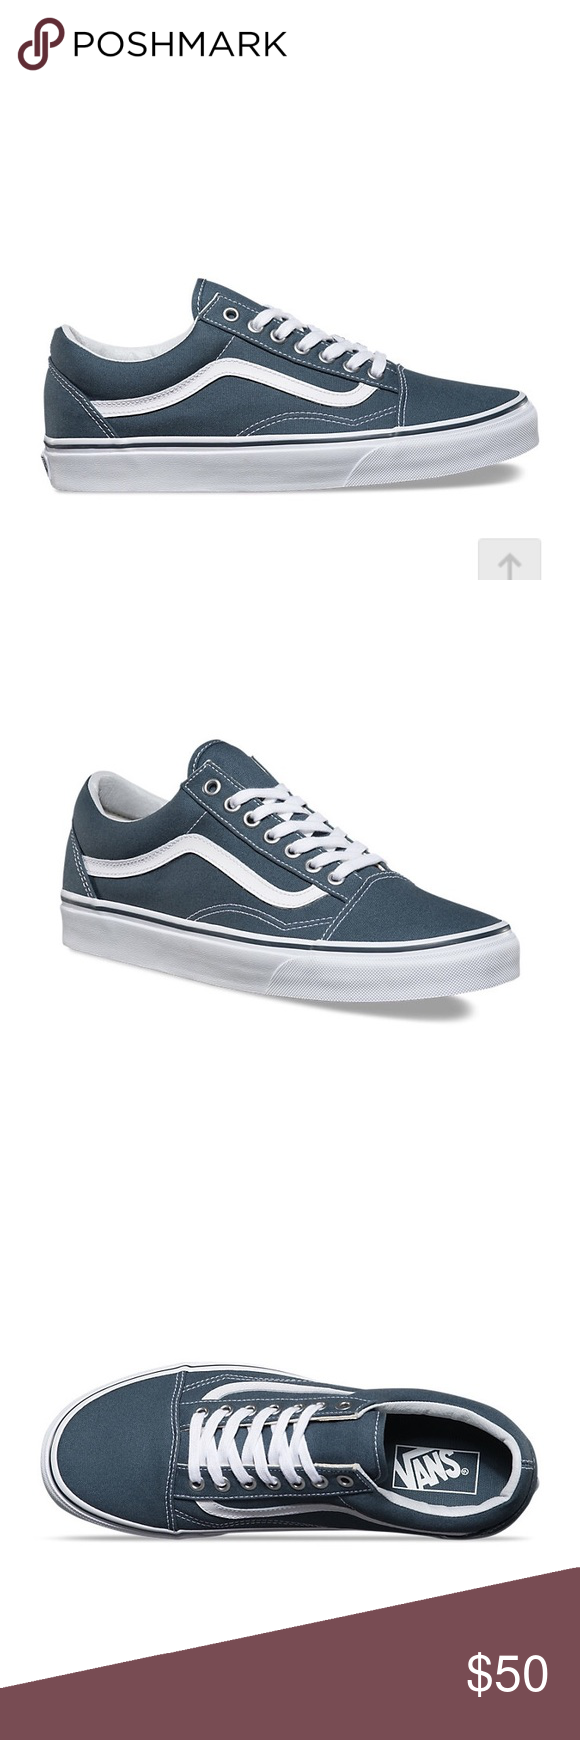 Continuamente Melbourne Deber  Canvas Old Skool Vans - Dark Slate/True White | Vans, Vans old skool  sneaker, Old skool